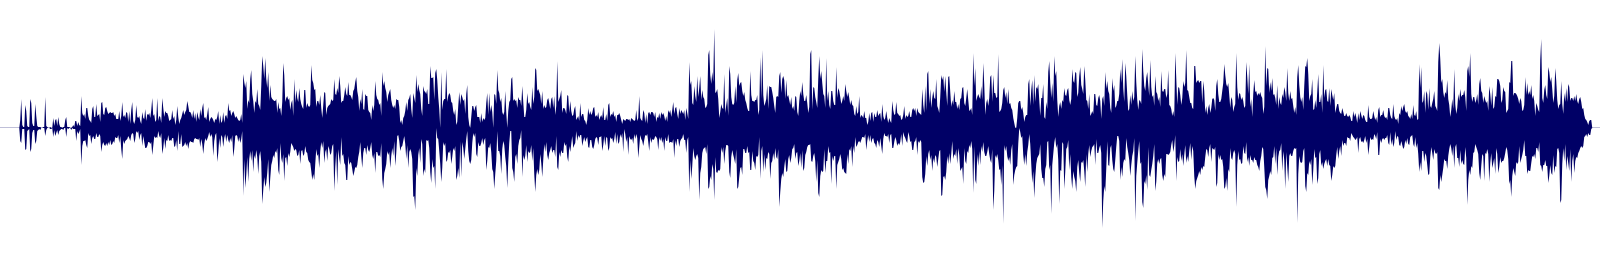 waveform of track #133194